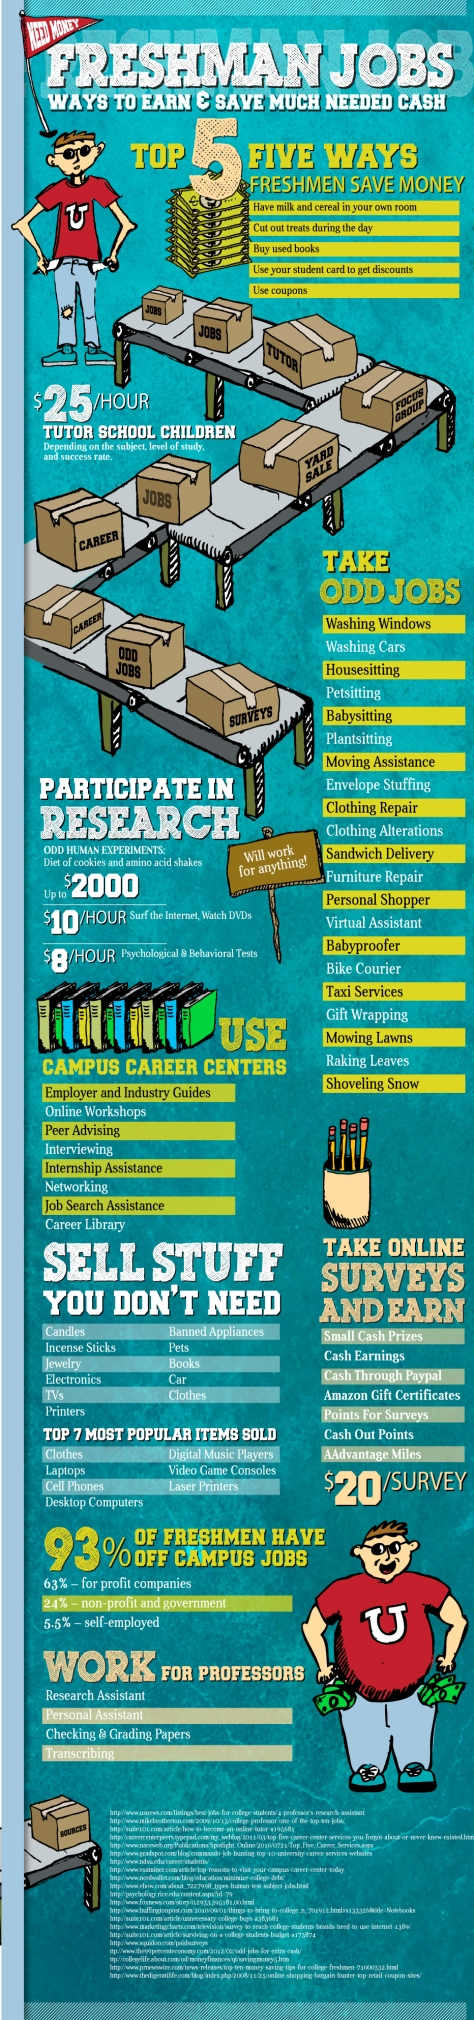 freshman-jobs-tips-to-earn-and-save-money-at-college_503430cc6d692